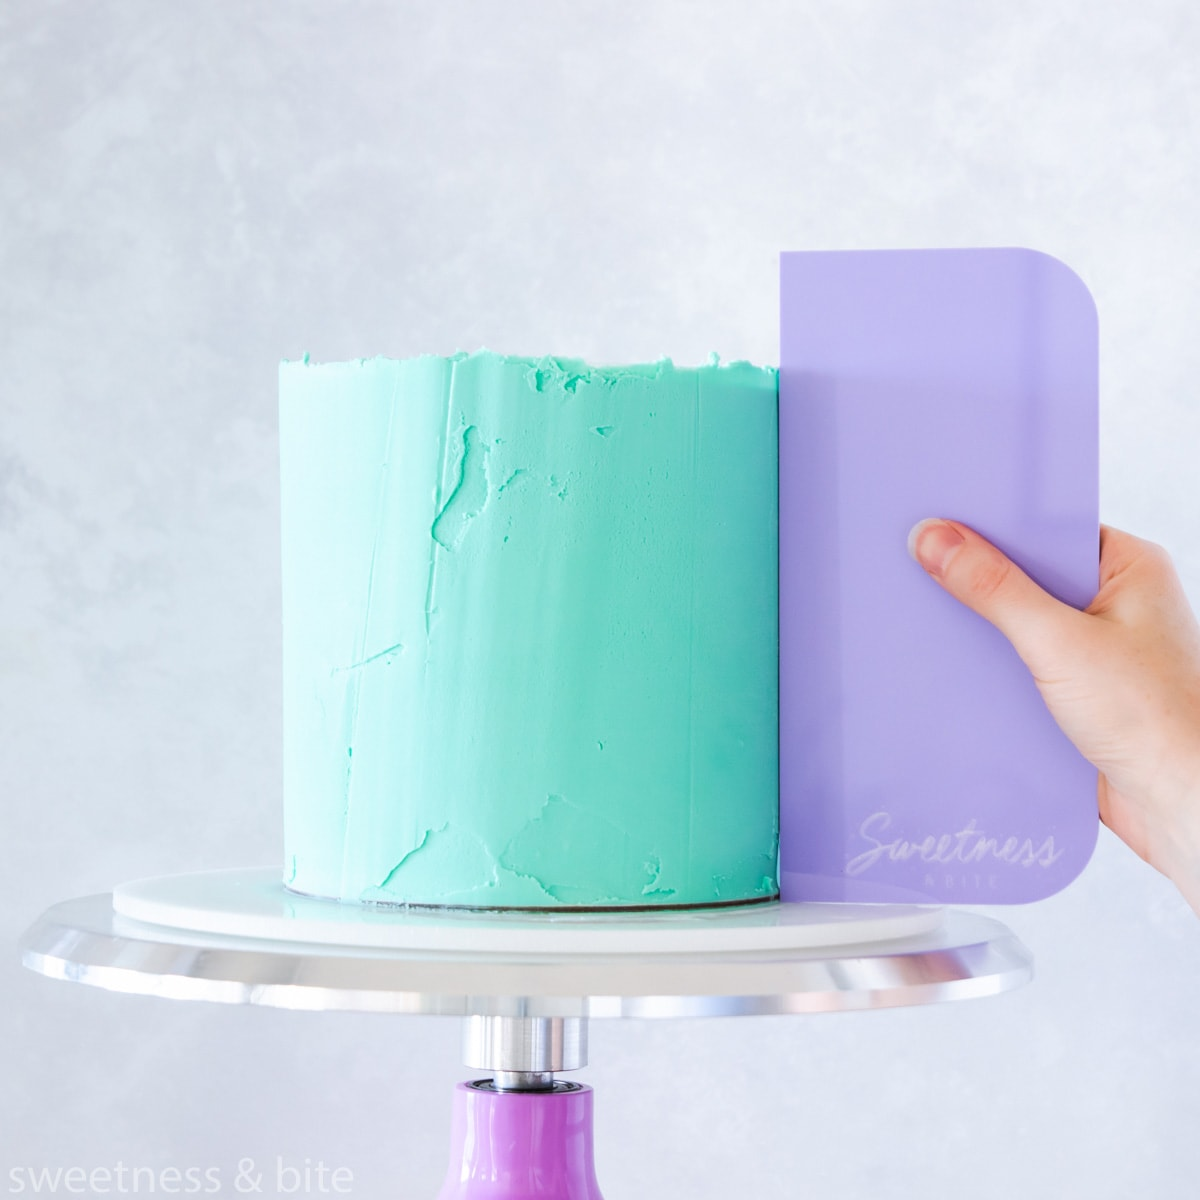 A cake being ganached with teal ganache using a purple scraper